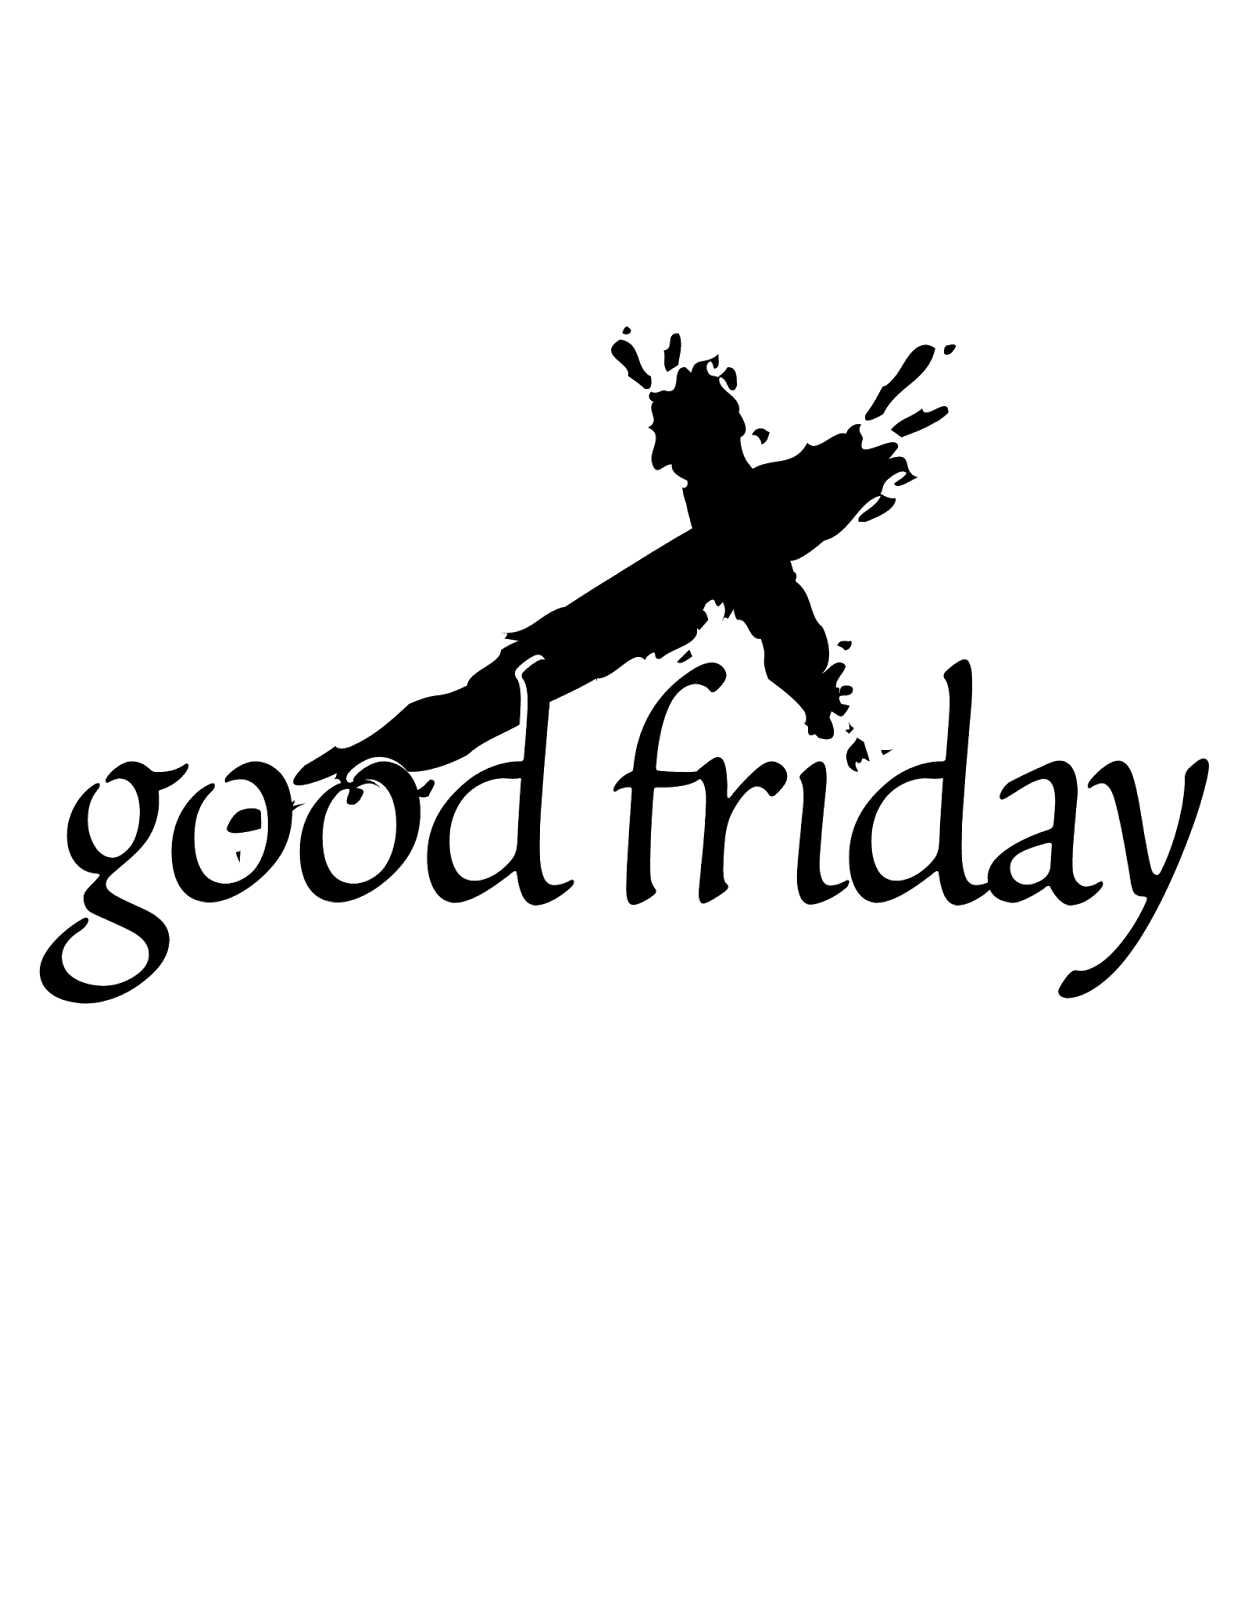 2018 clipart good friday. Beautiful of goodfridayimagesblackandwhite aloha